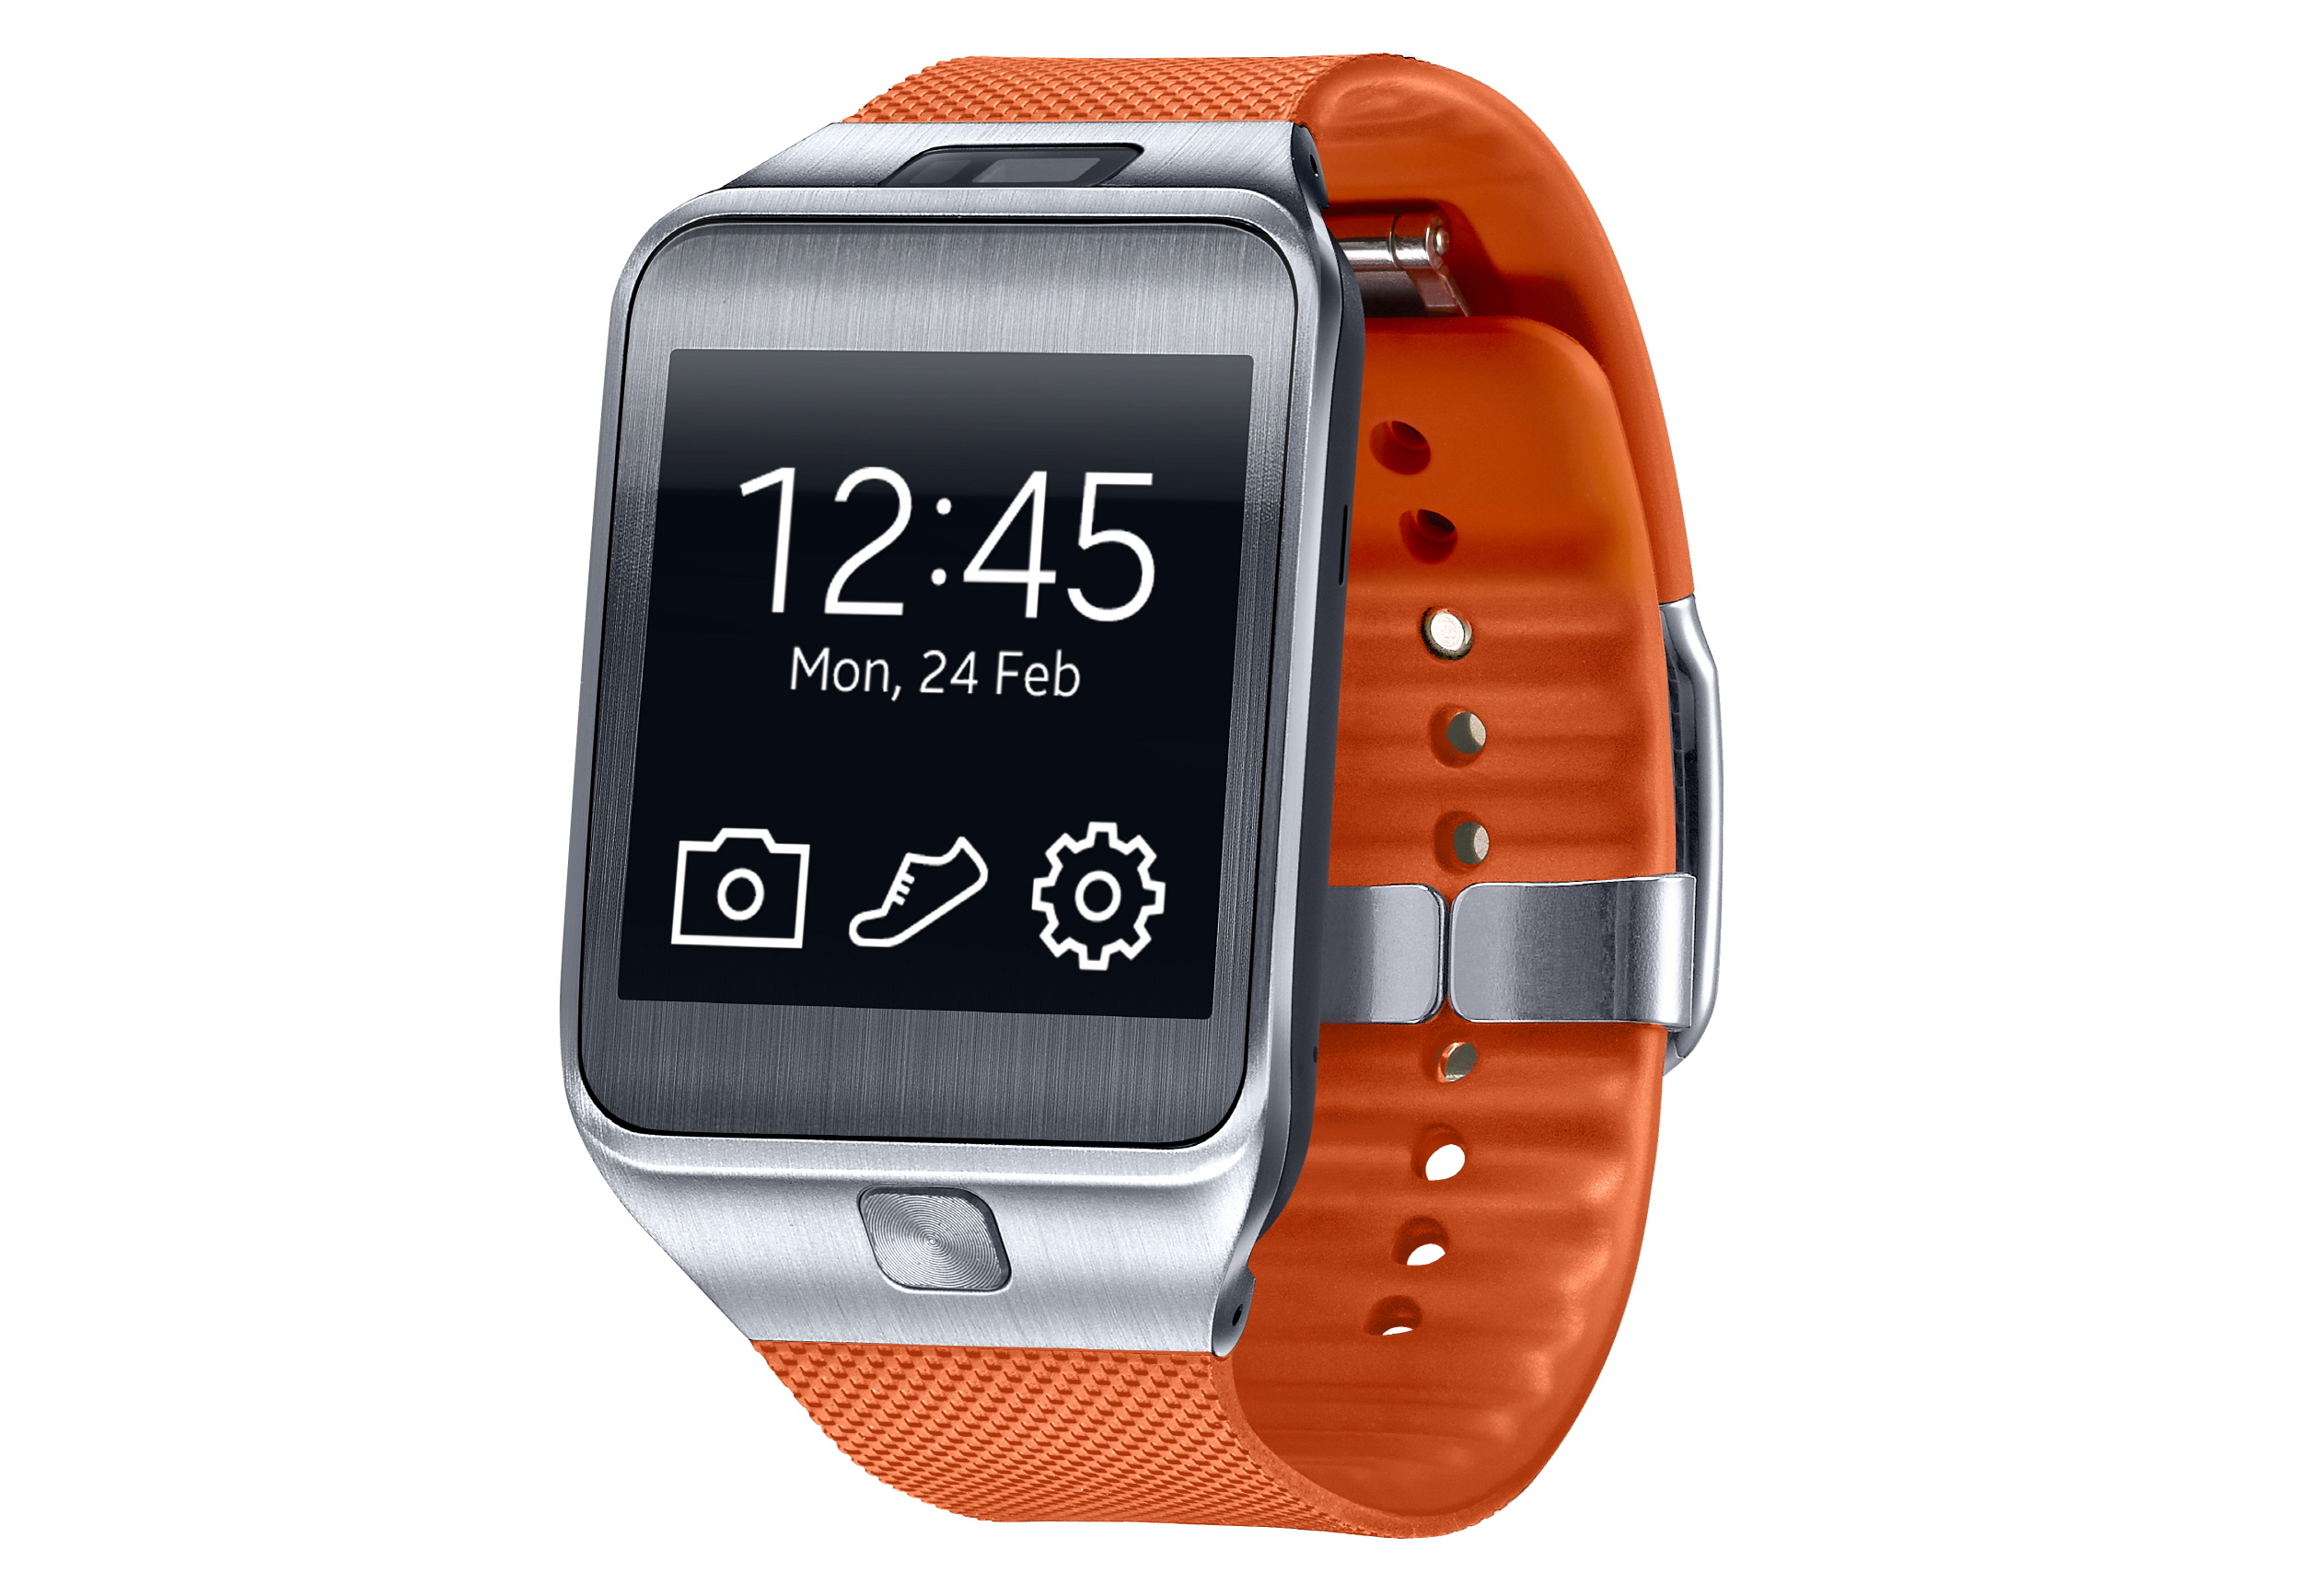 tech your lenovo lady wallpaper band resolution hi watch review vibe smartwatches smart watches